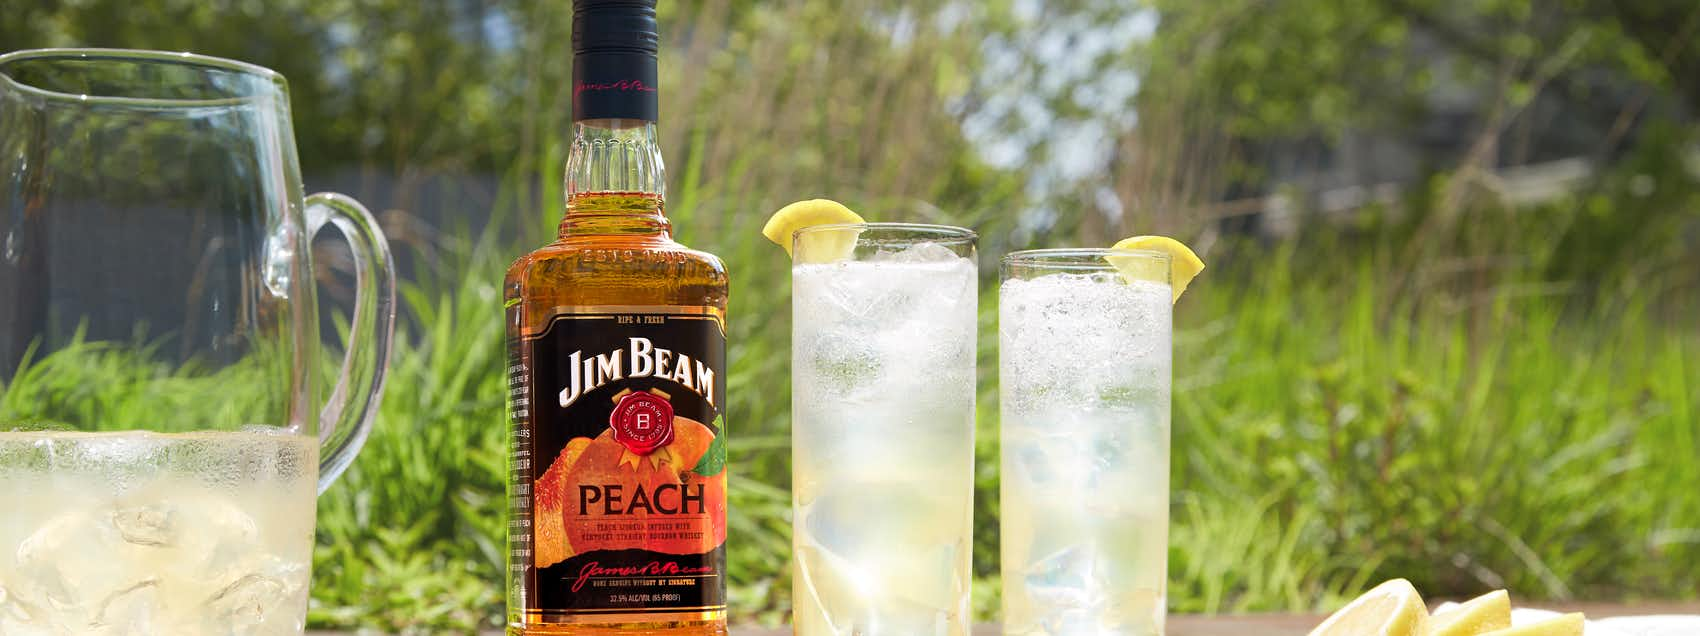 Jim Beam Peach Sparkling Lemonade